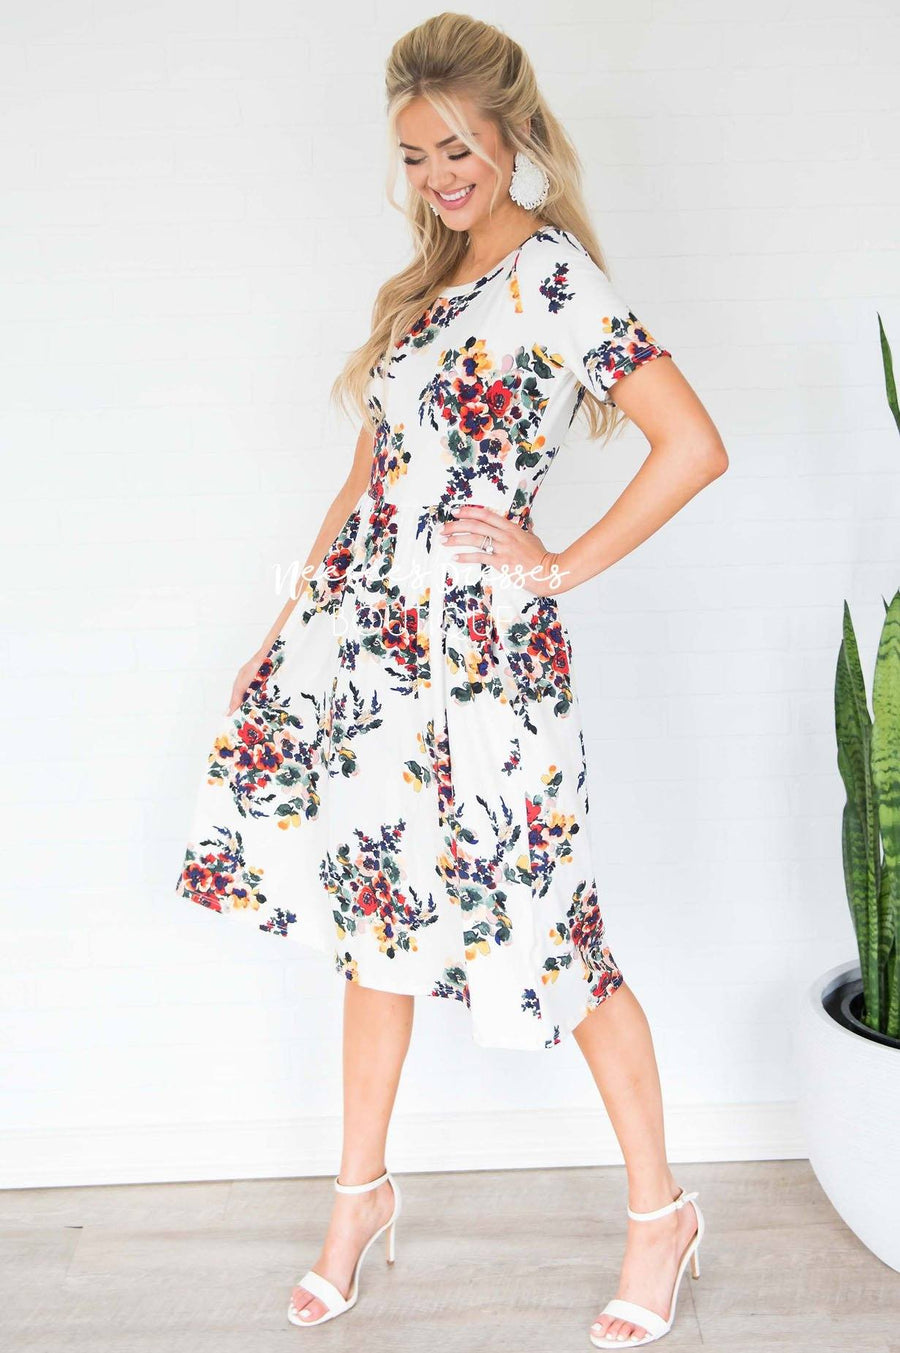 89aa500555b8 Modest Dresses, Vintage Dresses, Church Dresses and Modest Clothing ...